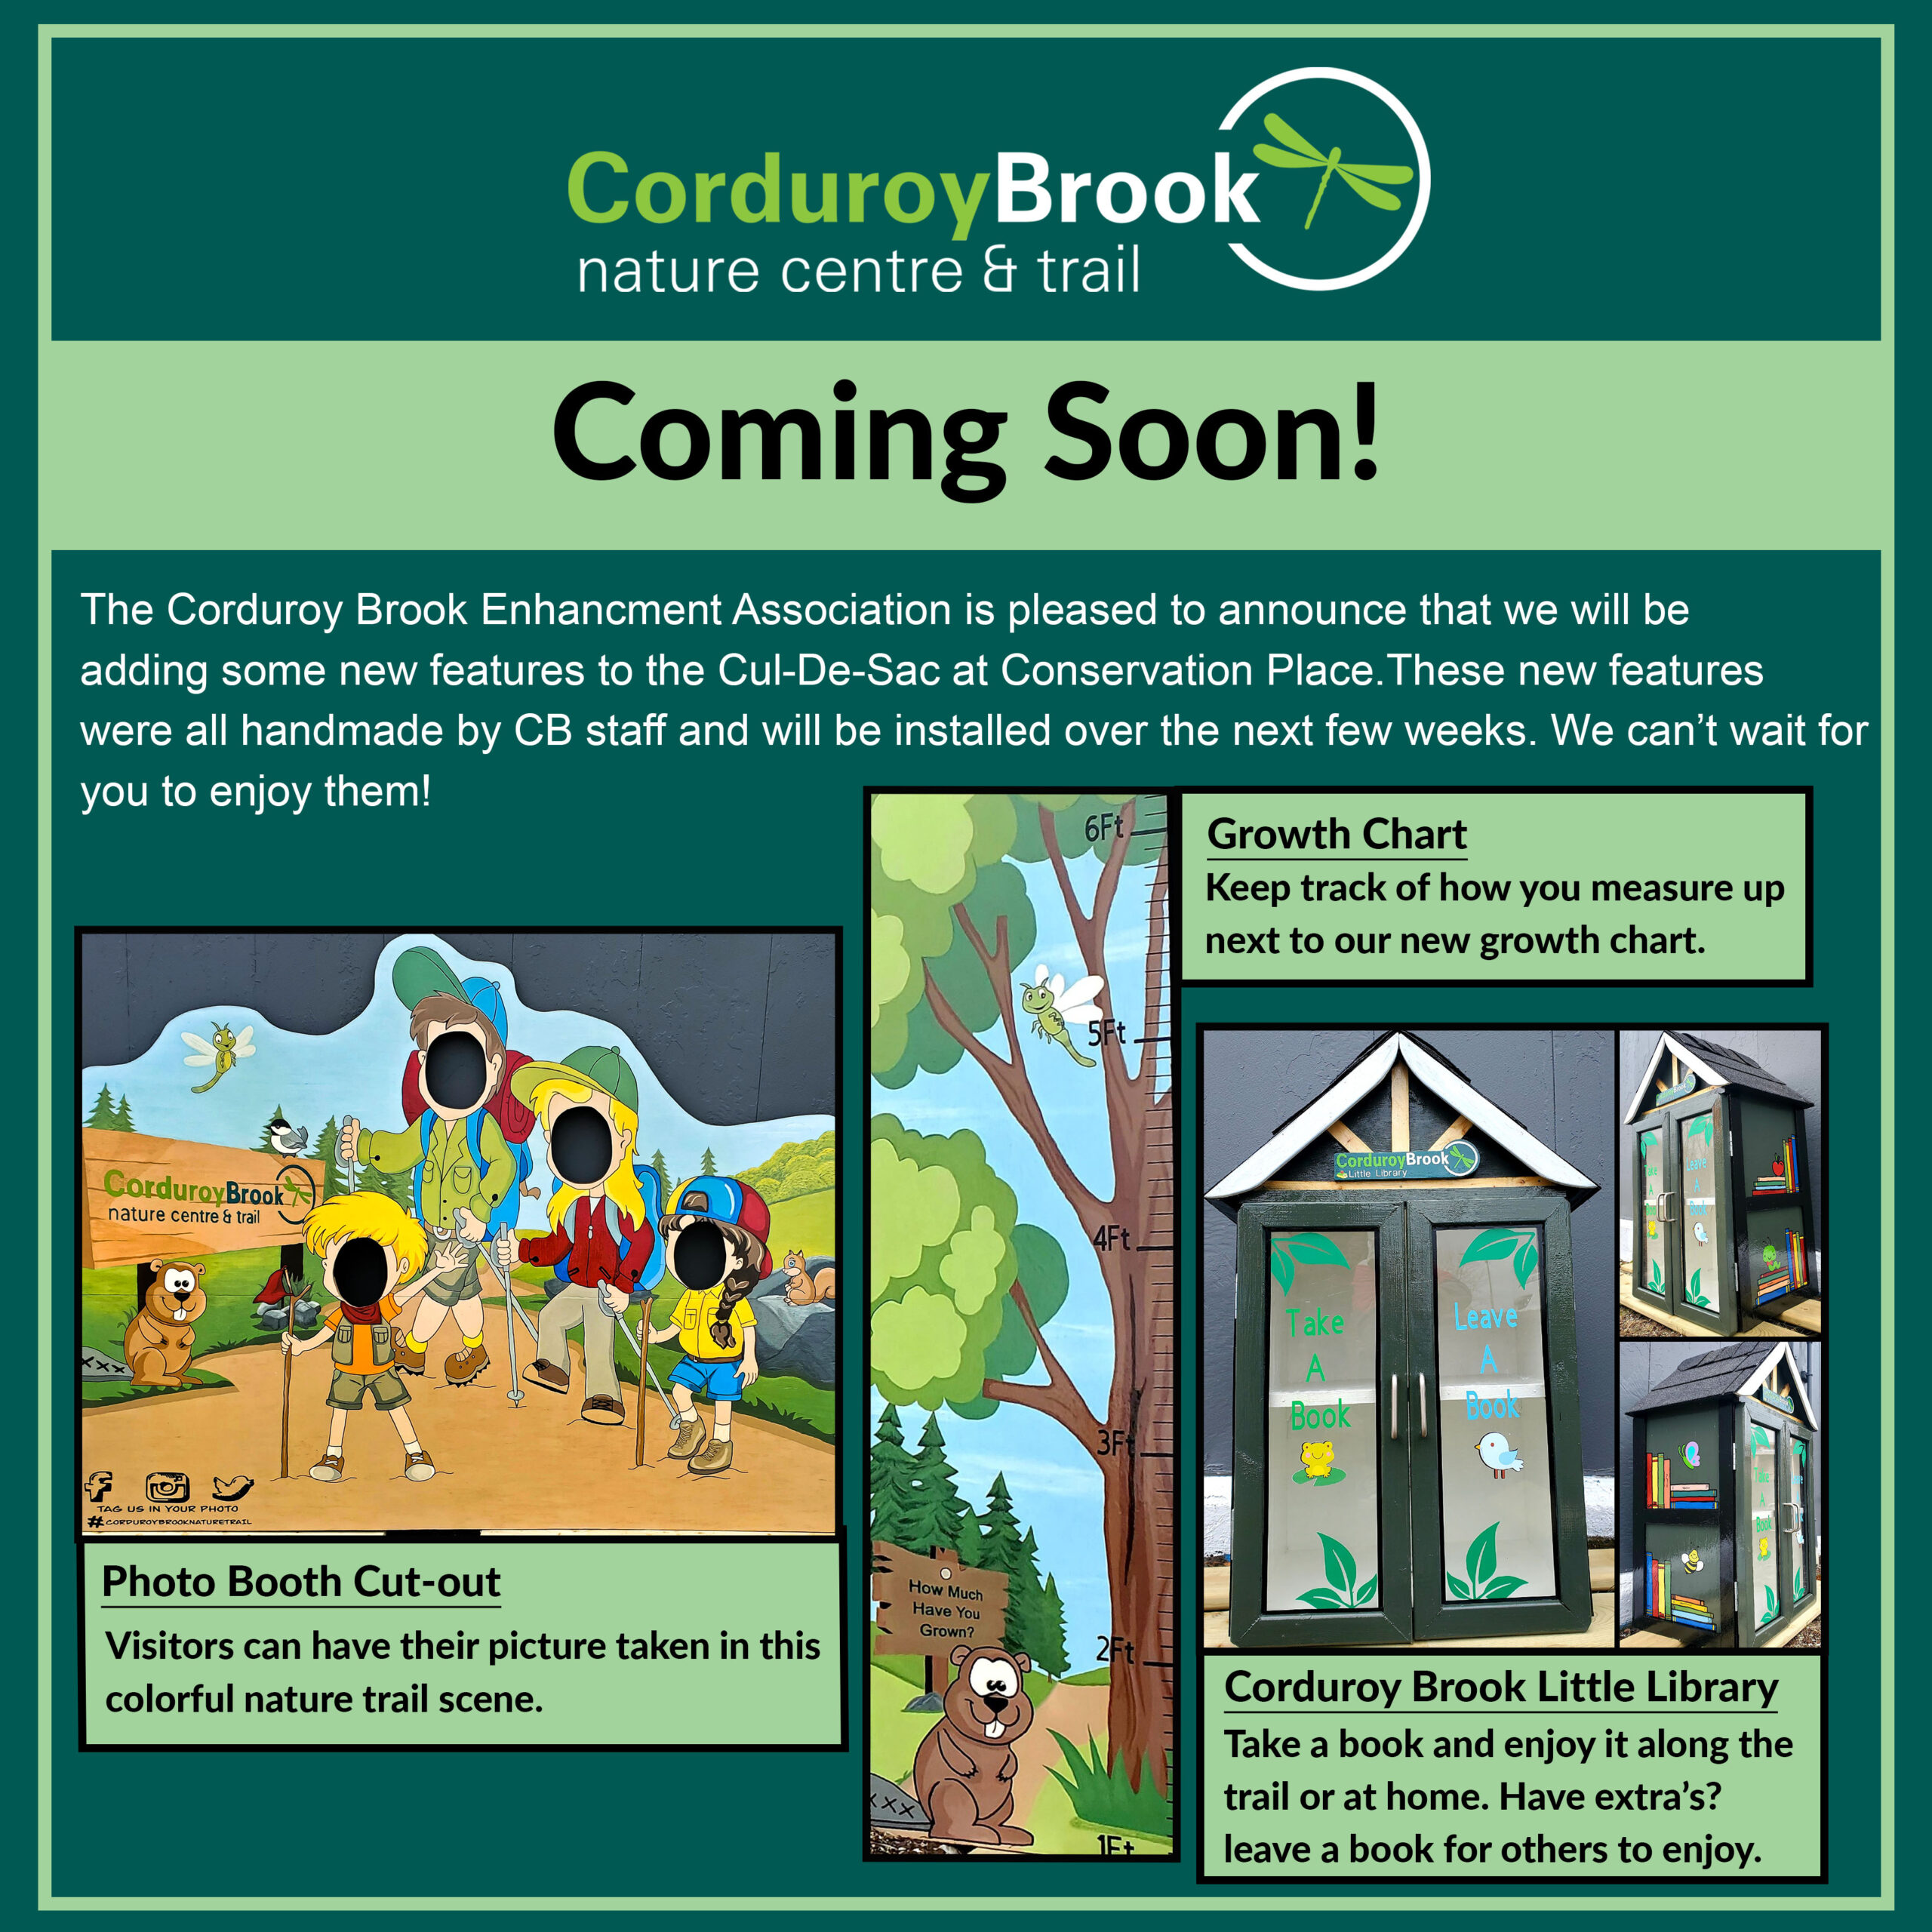 Coming Soon to Conservation Place Cul-de-sac